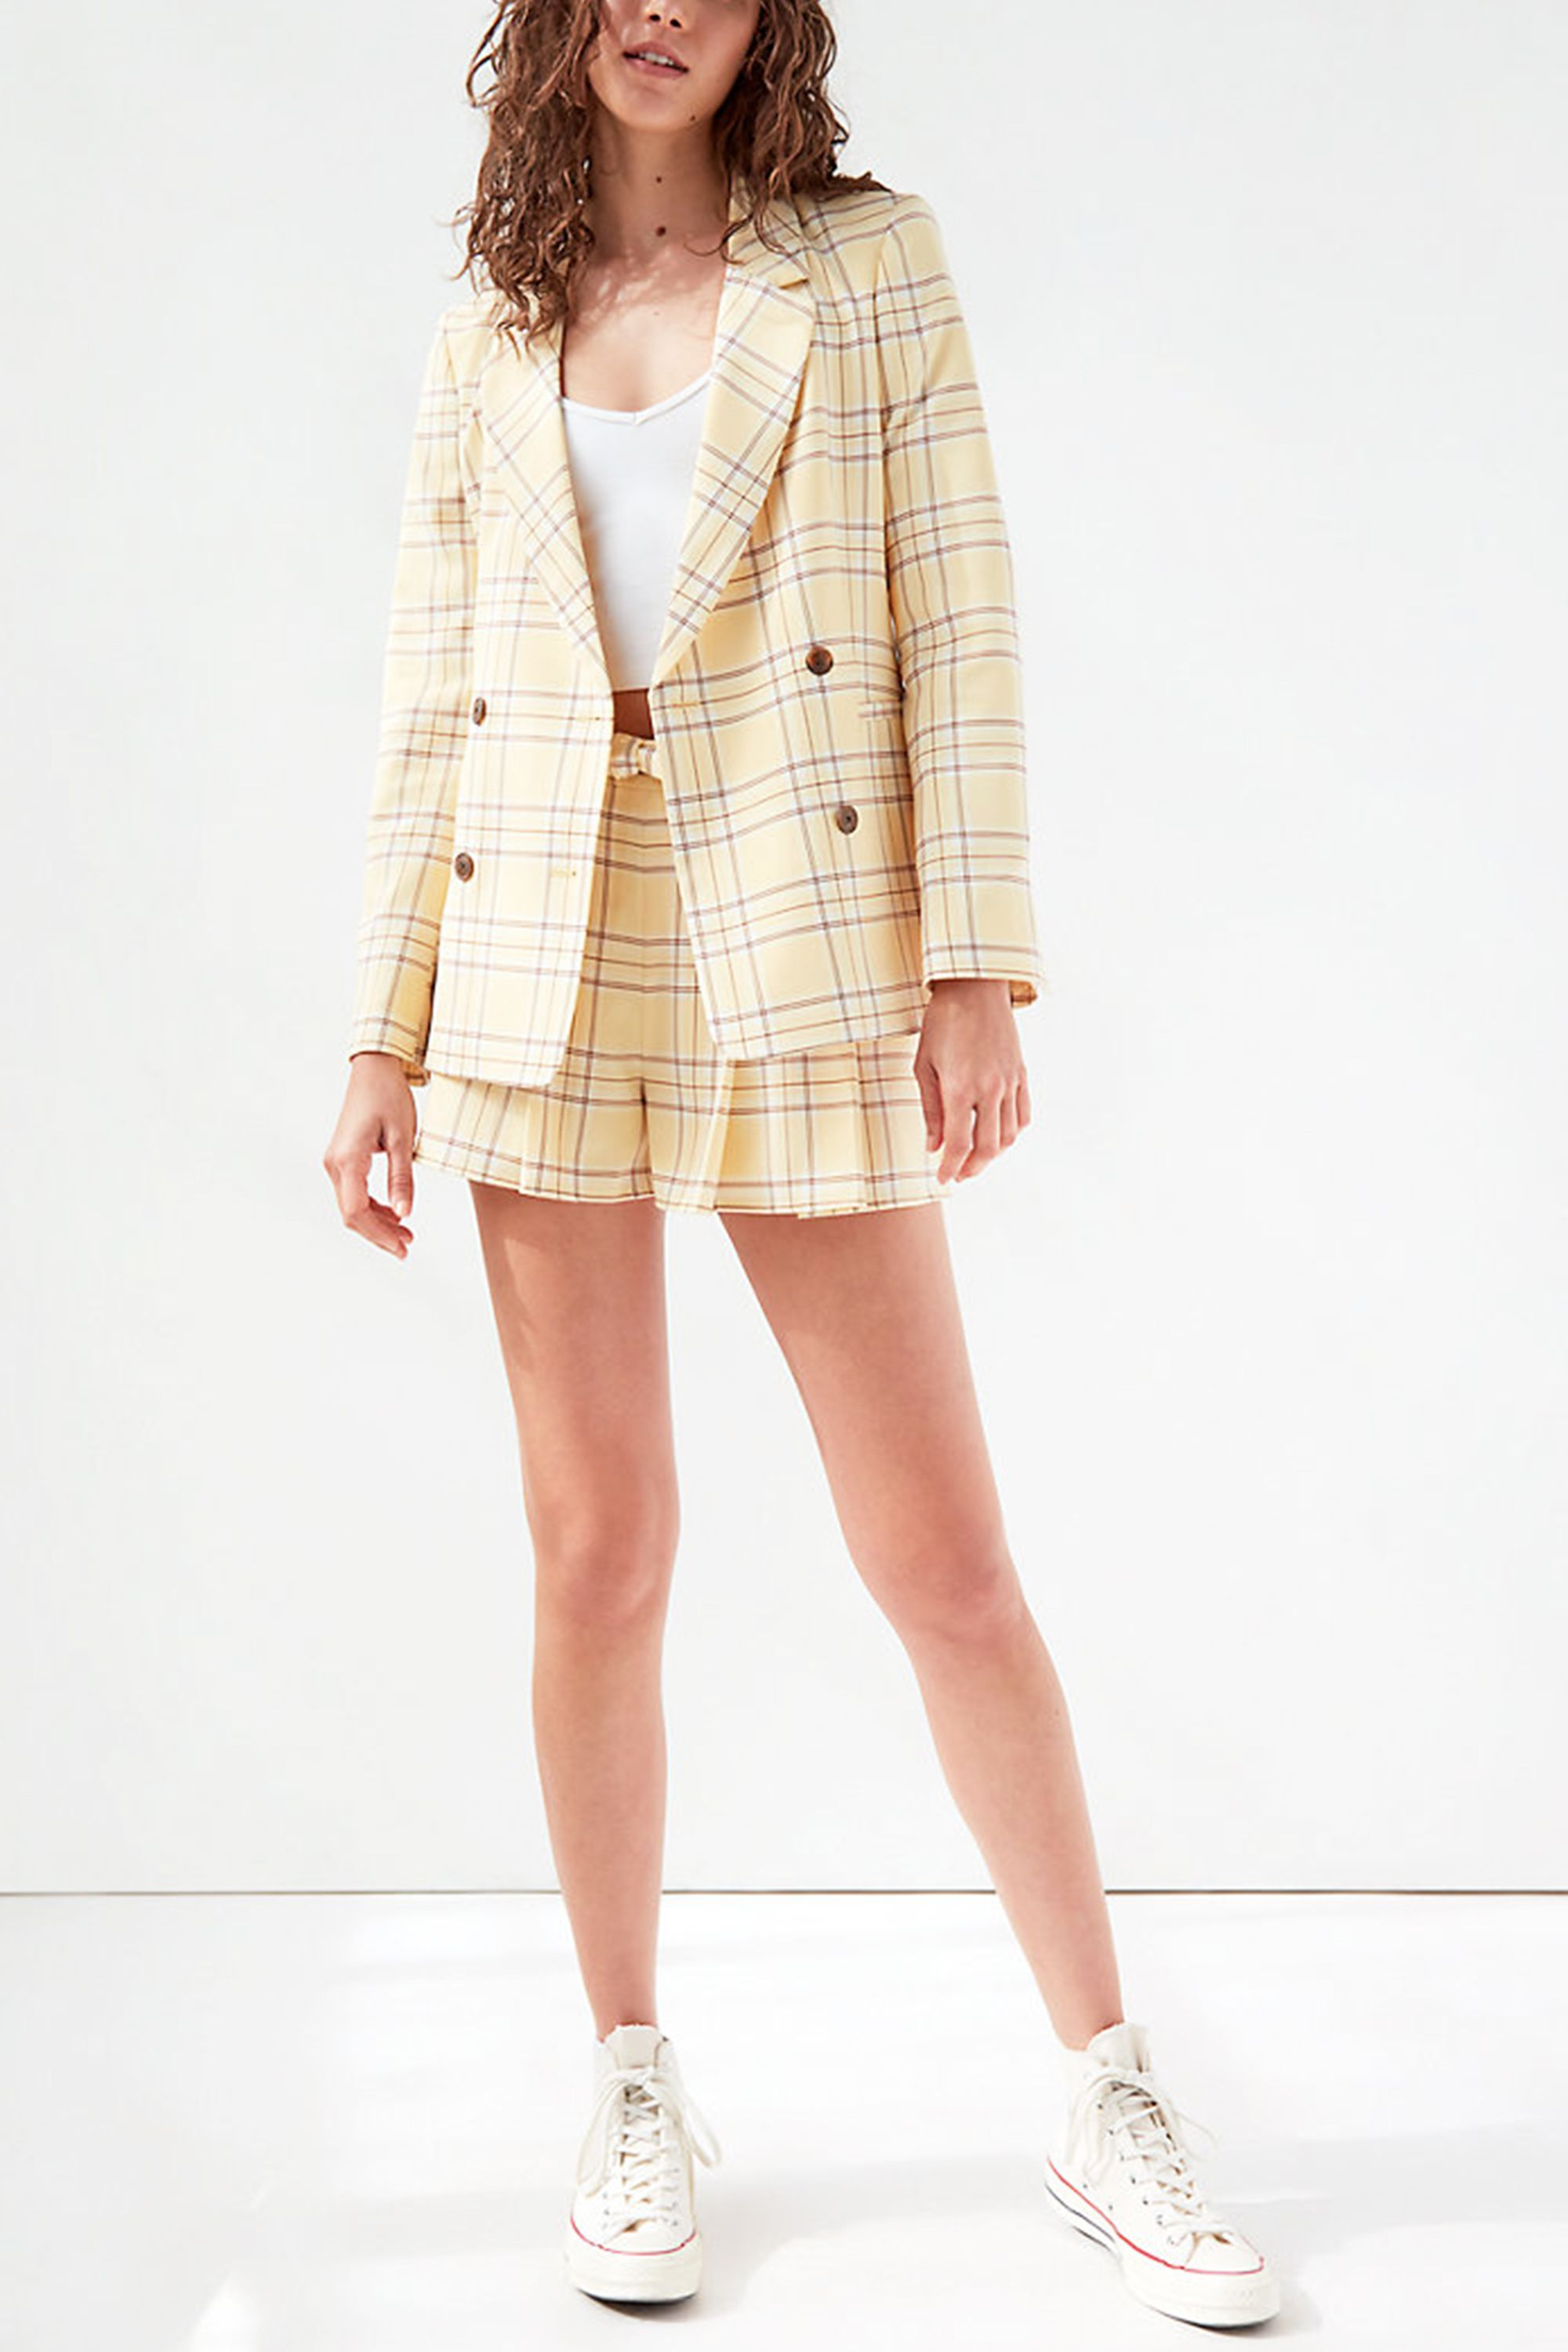 Checkered Double-Breasted Blazer Sunday Best aritzia.com $168.00 SHOP NOW Cher Horowitz' iconic yellow plaid suit will always tempt us, so we love this laid back rendition. Make the two-piece holiday ready with a white tank and Converses.